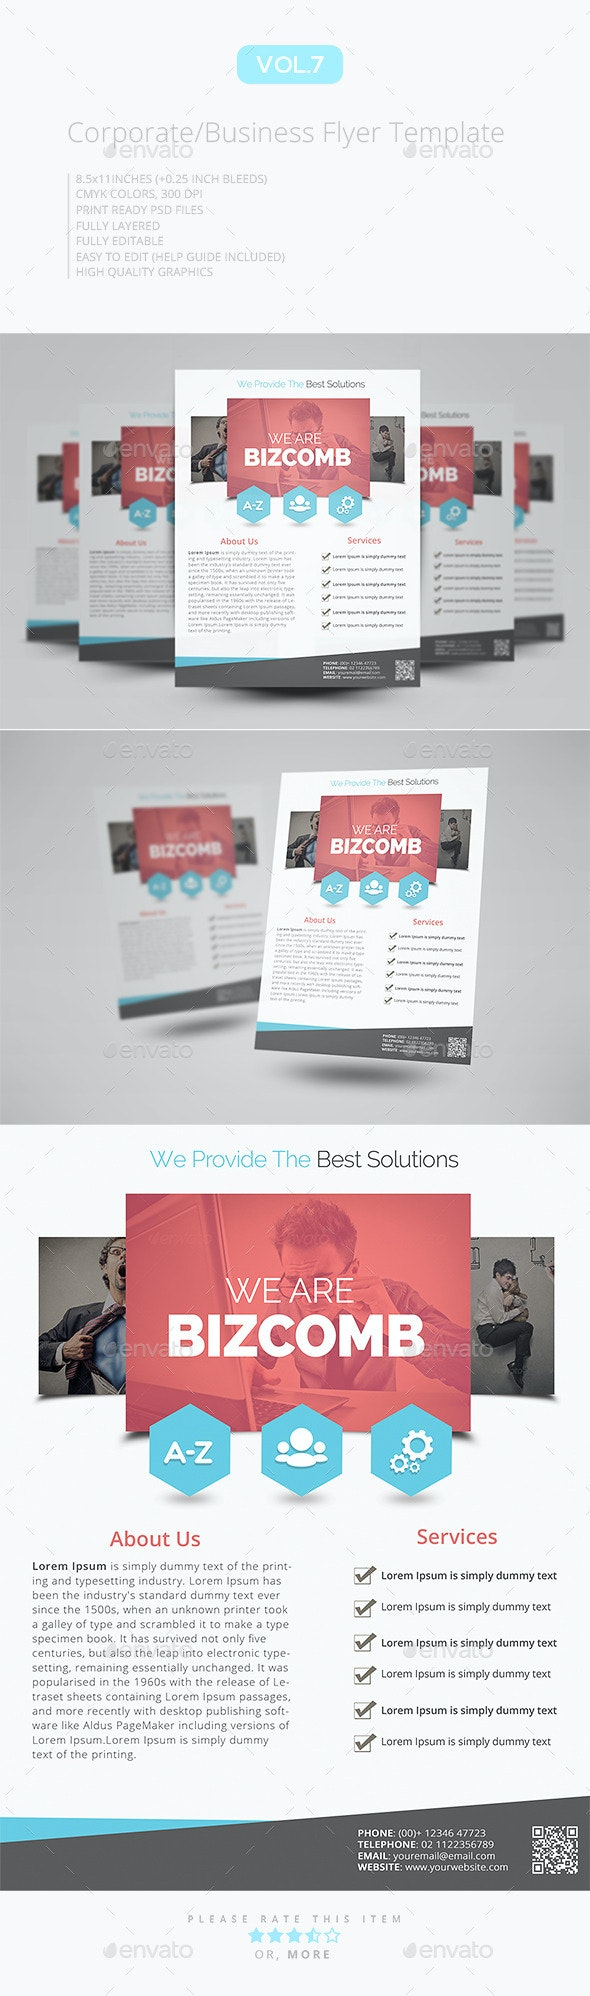 Corporate Flyer Template V.7 - Corporate Flyers